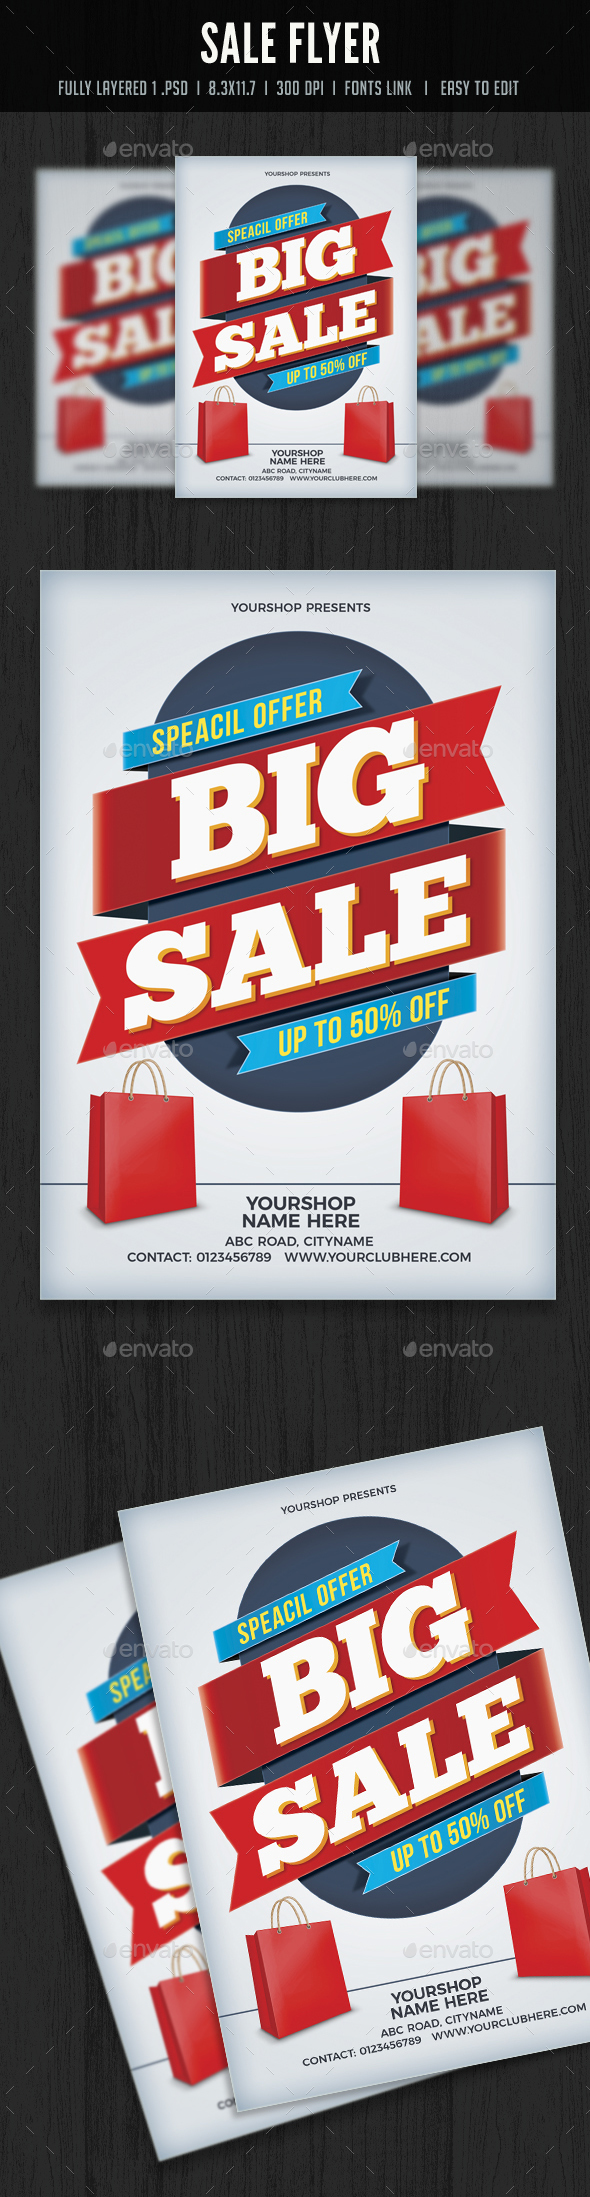 Sale Flyer/Poster - Flyers Print Templates